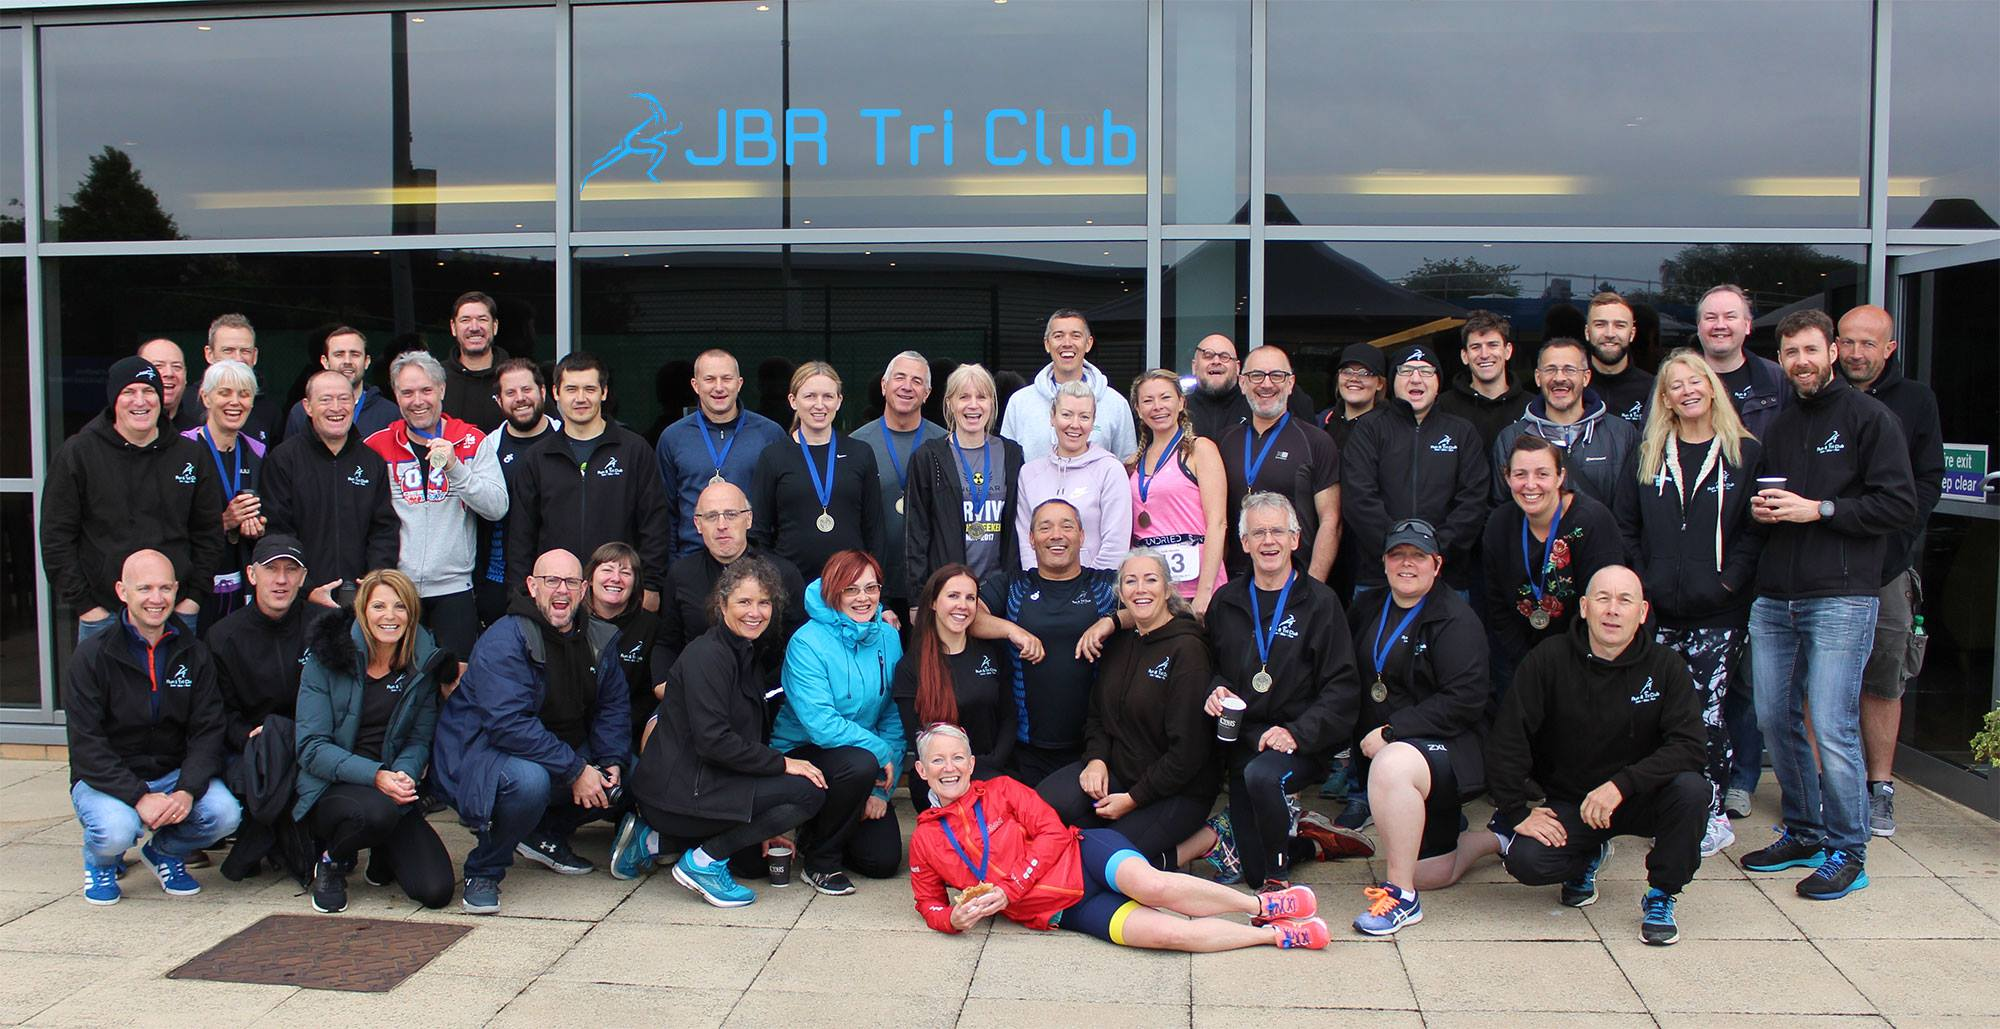 Group shot - the triathletes and their coaches at the end of their event at David Lloyd Southend